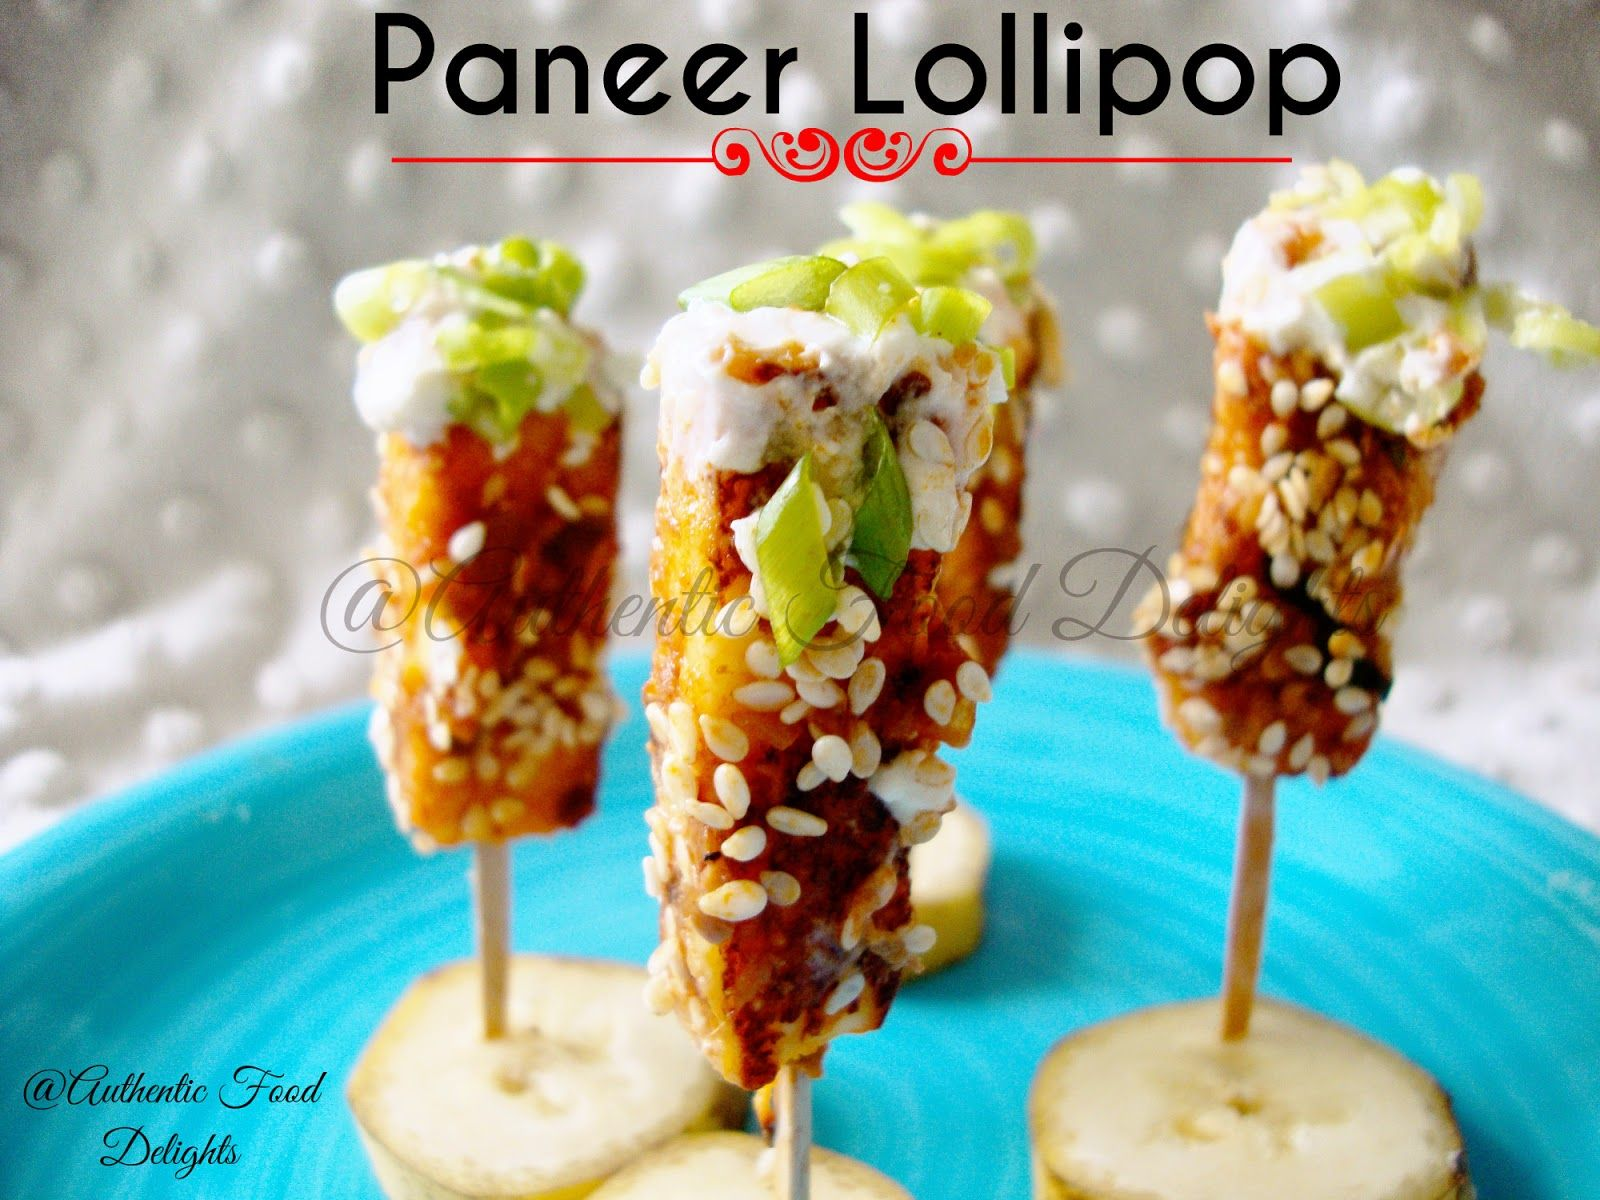 Indian Vegetarian Menu Ideas For Dinner Party Part - 21: Authentic Food Delights: Paneer Lollipop, Healthy Indian Vegetarian Snack.